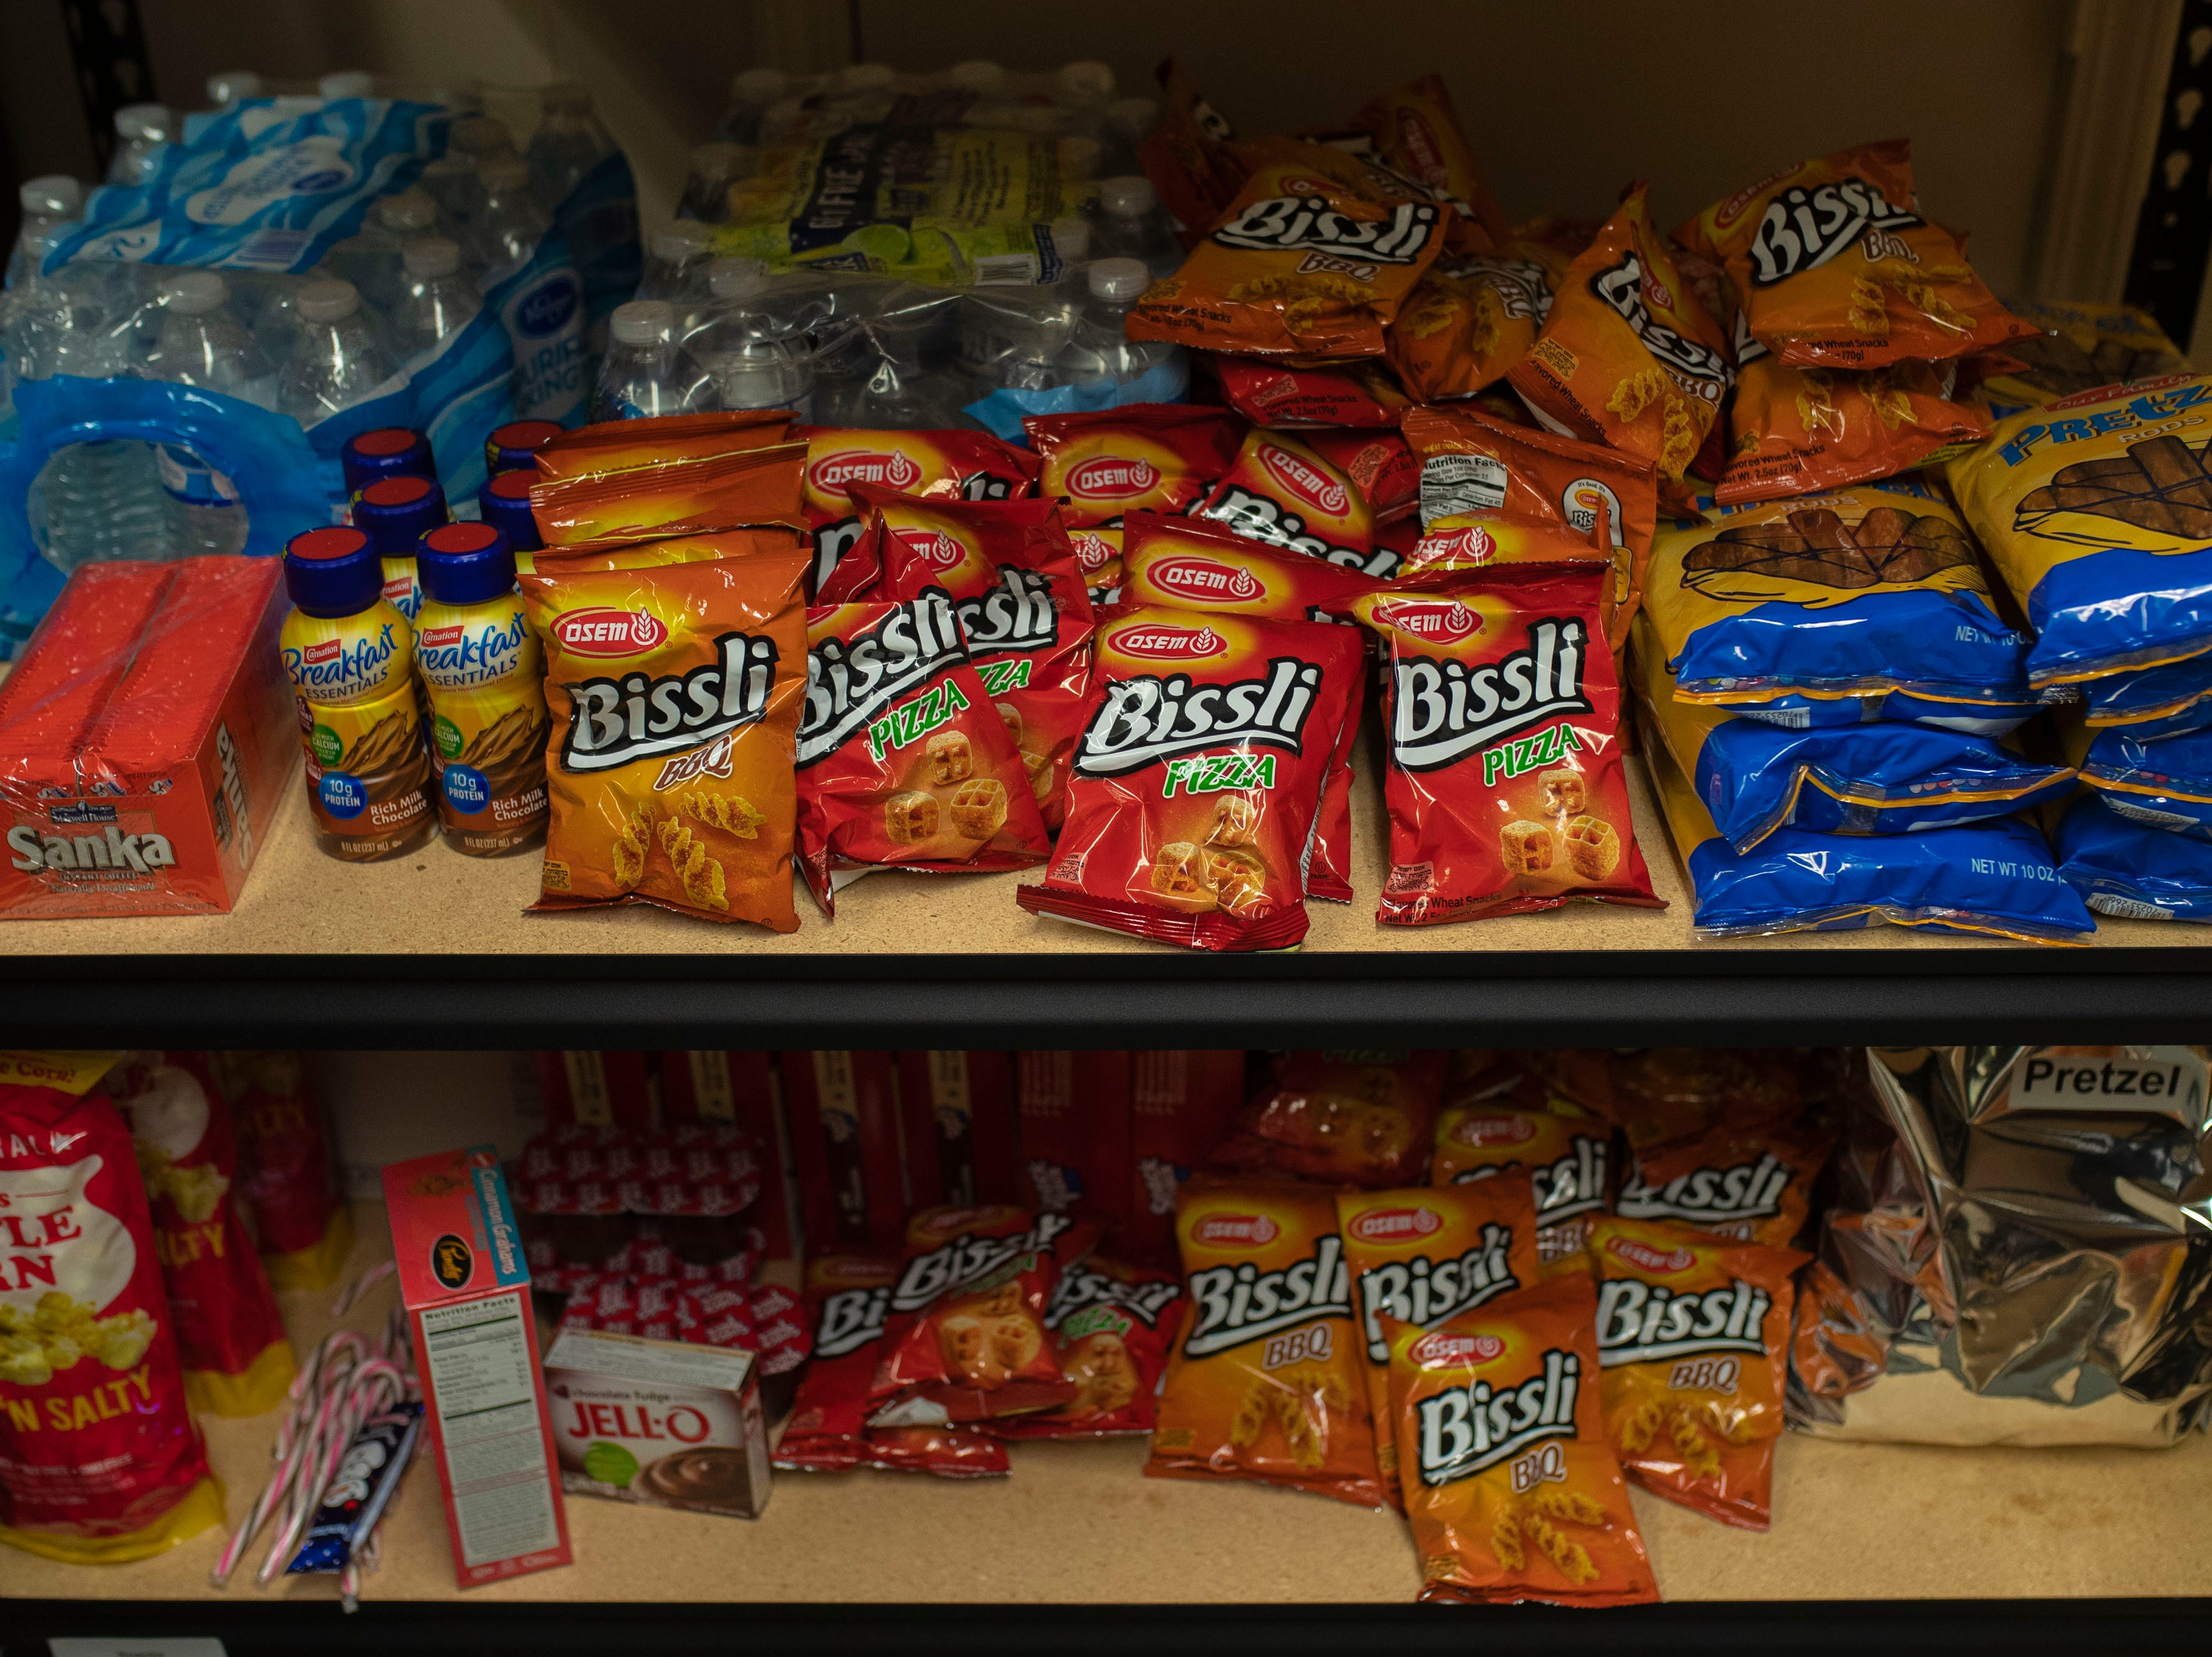 Food items picked up at the Dare to Care food bank sit in Bellarmine's food pantry. The food pantry at Bellarmine is open to any students that may benefit from access to extra snacks and meals. Feb. 4, 2019